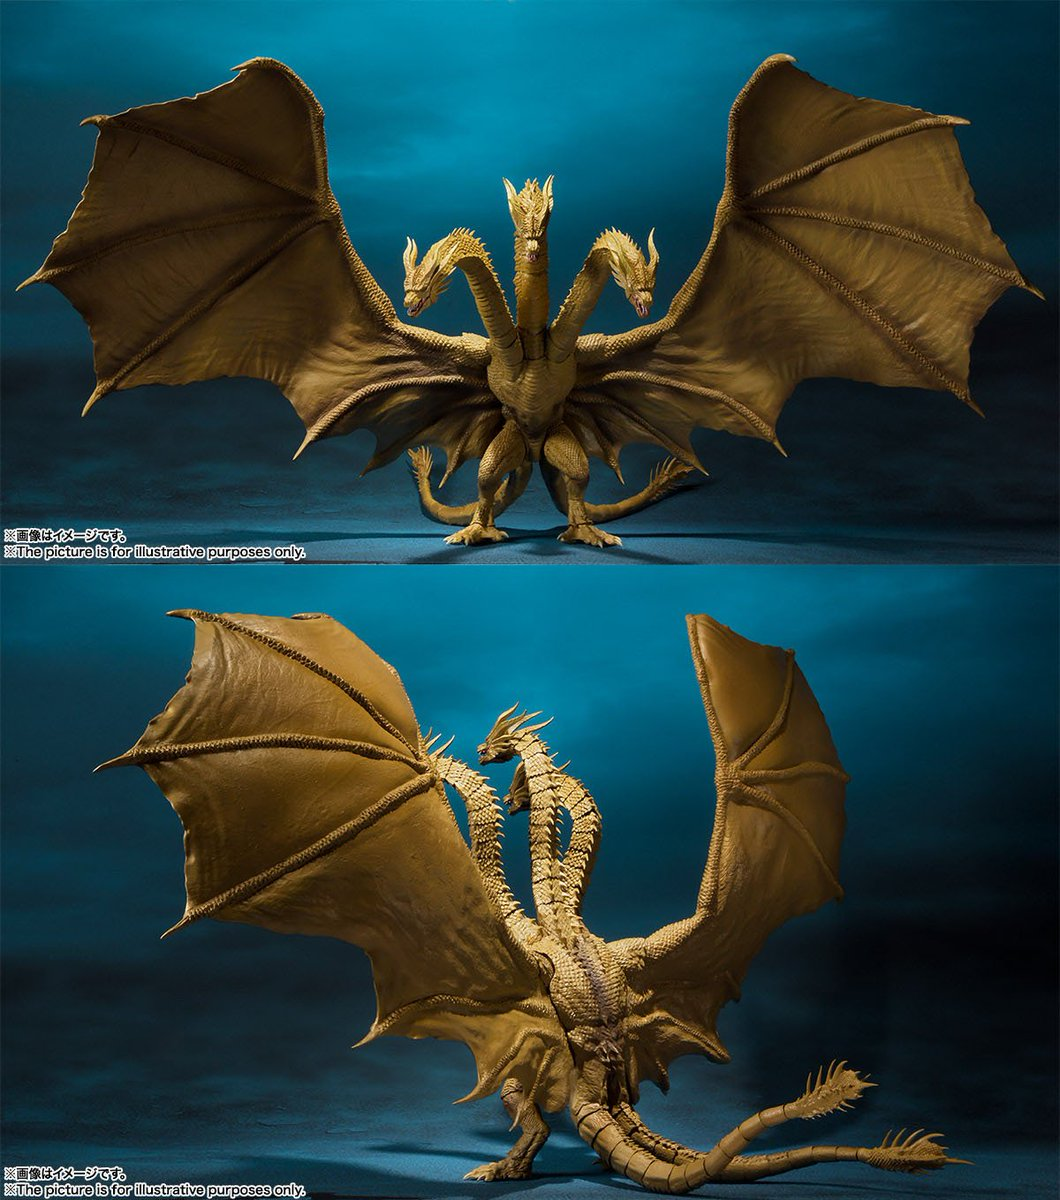 "Godzill 2019: Tendou On Twitter: ""[S.H.MonsterArts] King Ghidorah"